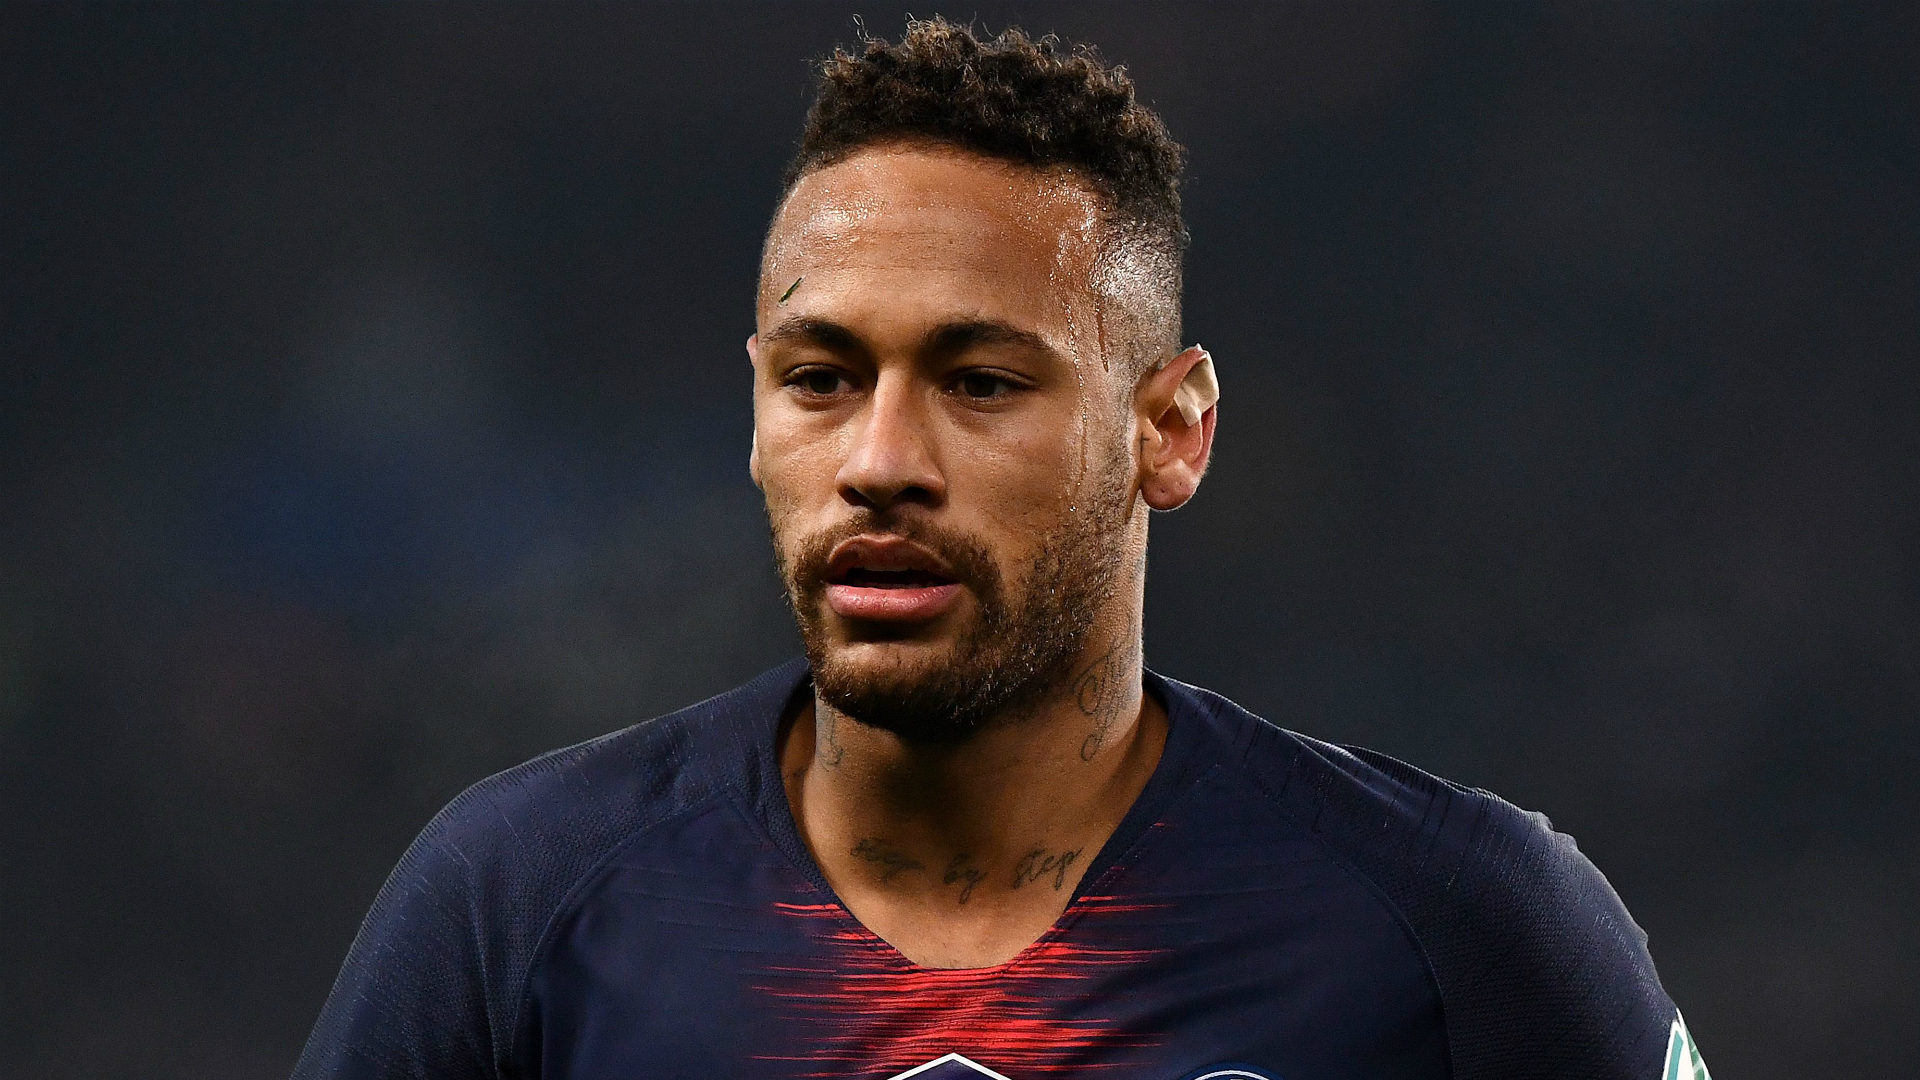 Neymar to serve three-game Champions League suspension as appeal rejected